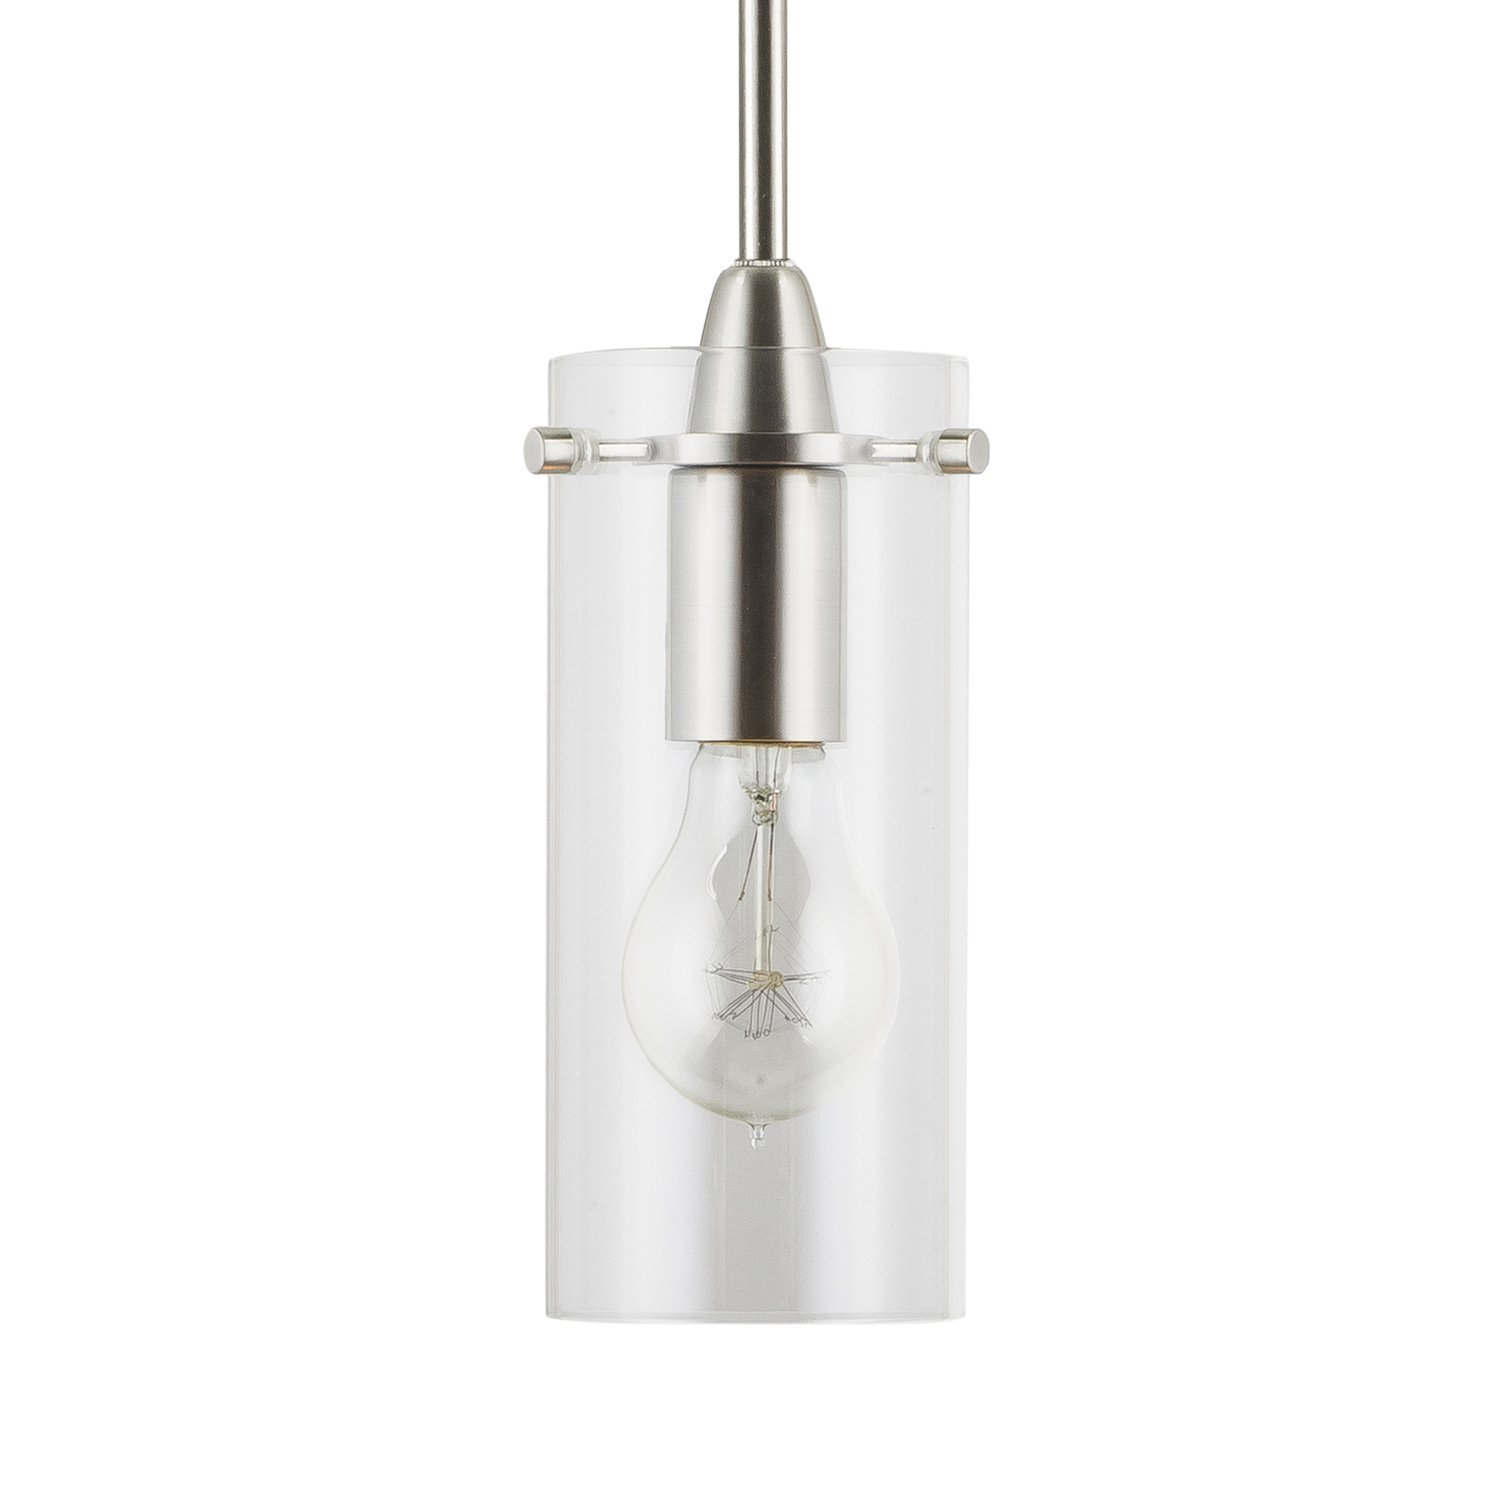 Effimero Small Stem Hung Clear Glass Contemporary Pendant Light. Brushed Nickel Fixture with Adjustable Hanging Height. Industrial Edison Modern Style. UL Listed, Linea di Liara LL-P311-BN